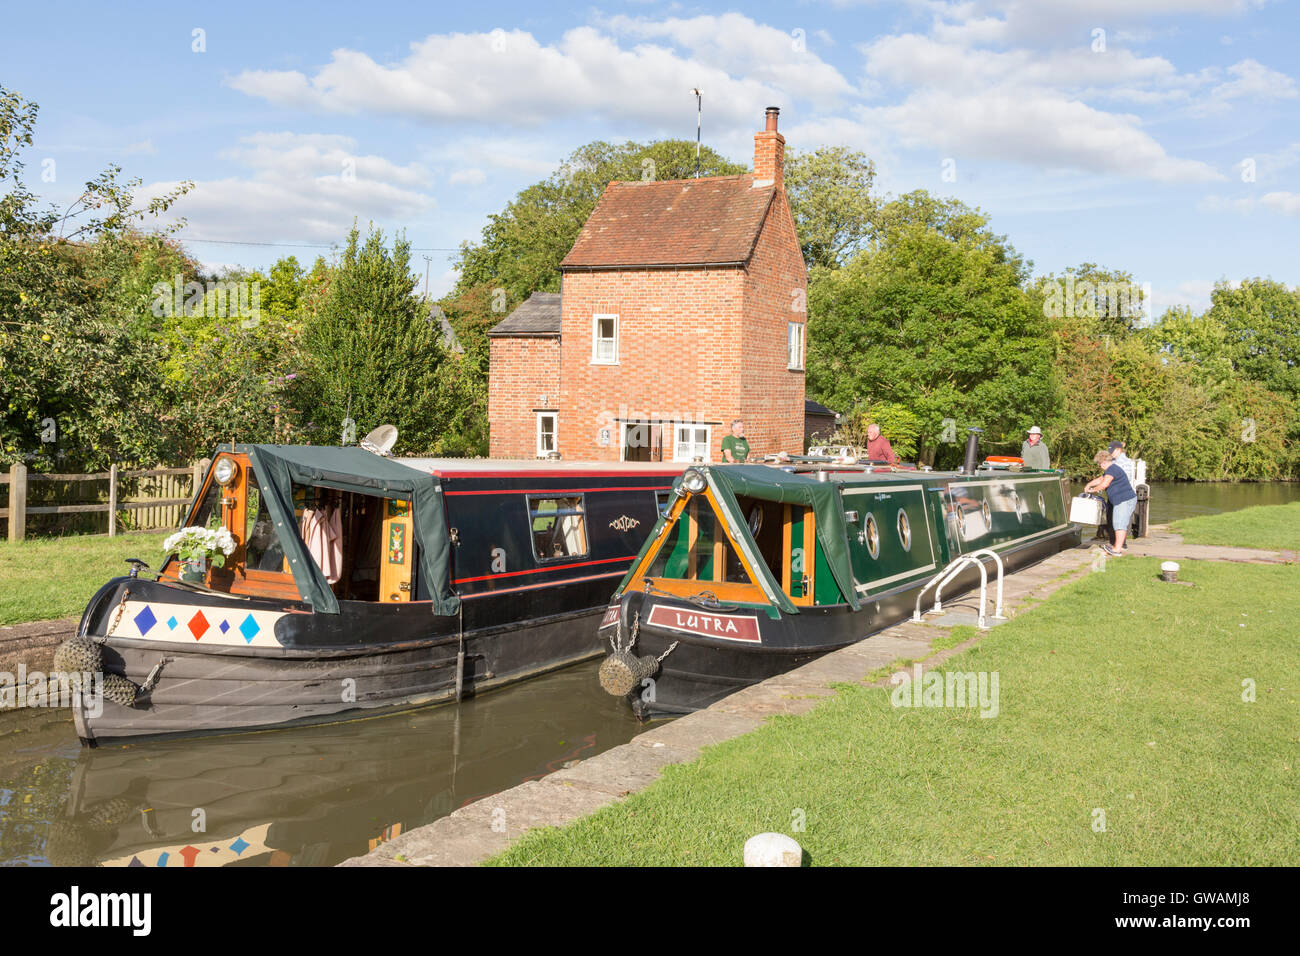 Narrowboats in lock 2 at Braunston on the the Grand Union Canal, Northamptonshire, England, UK - Stock Image